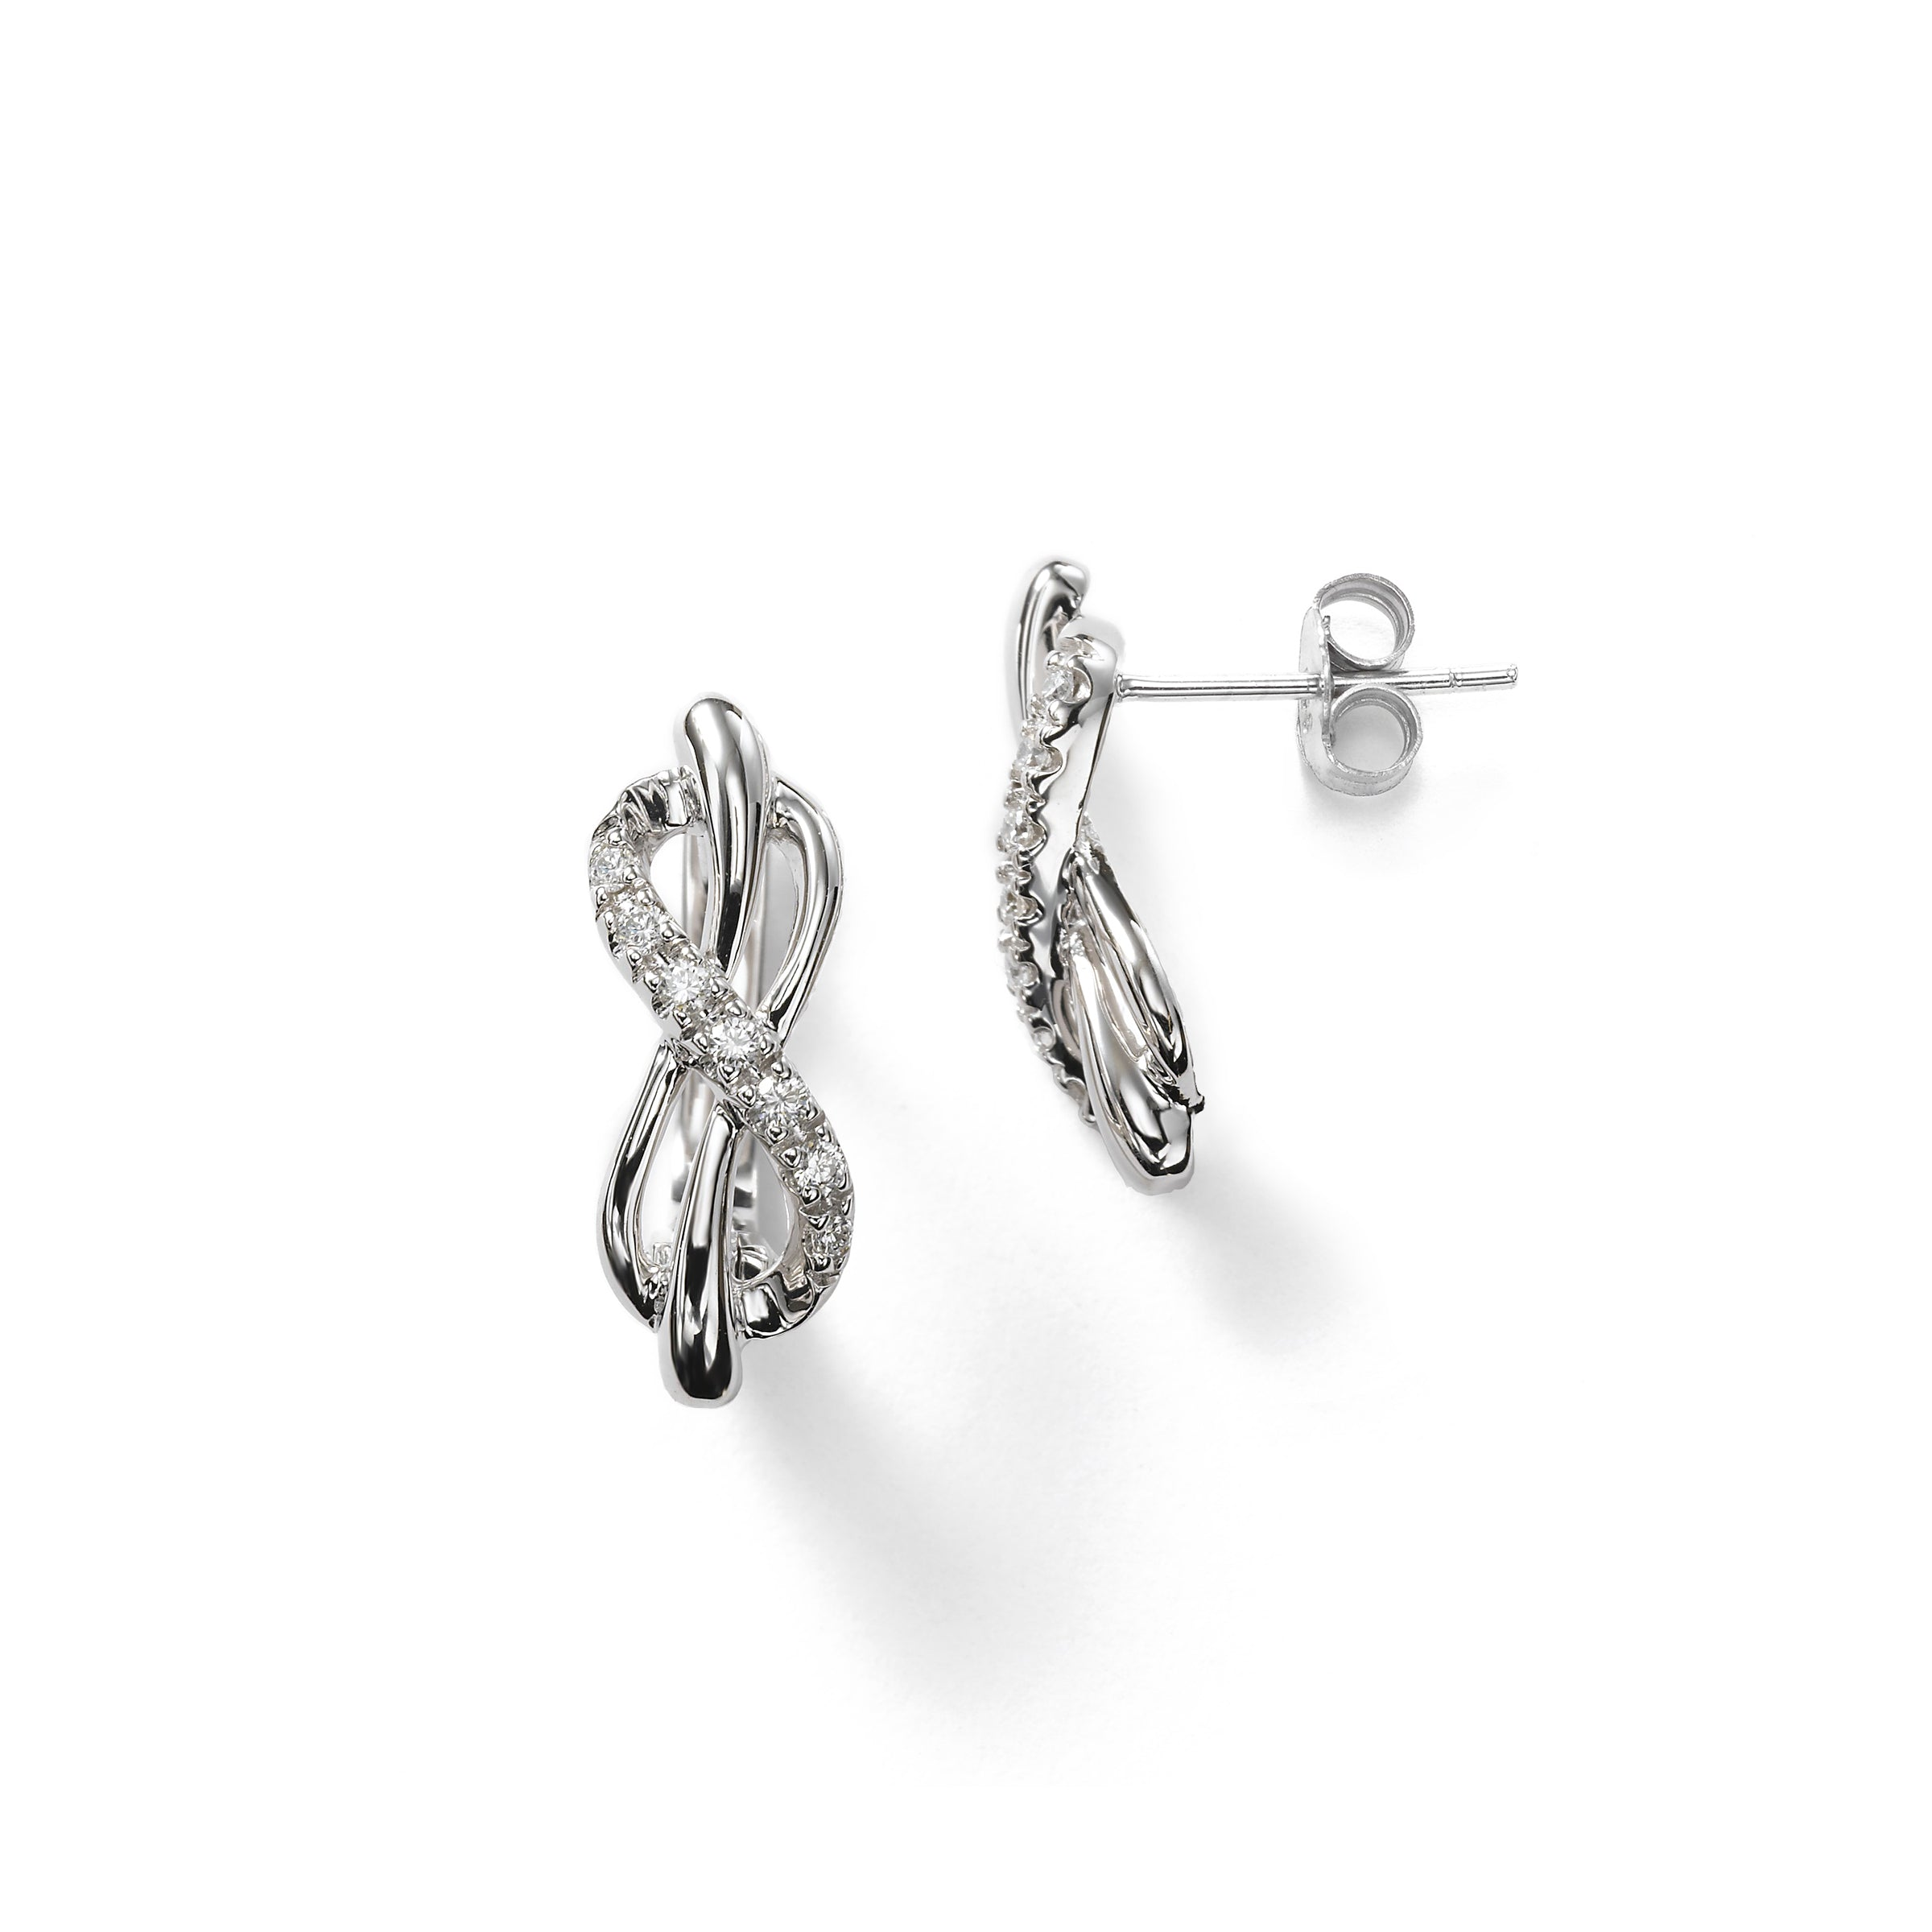 Elongated Knot Diamond Earrings, 14K White Gold